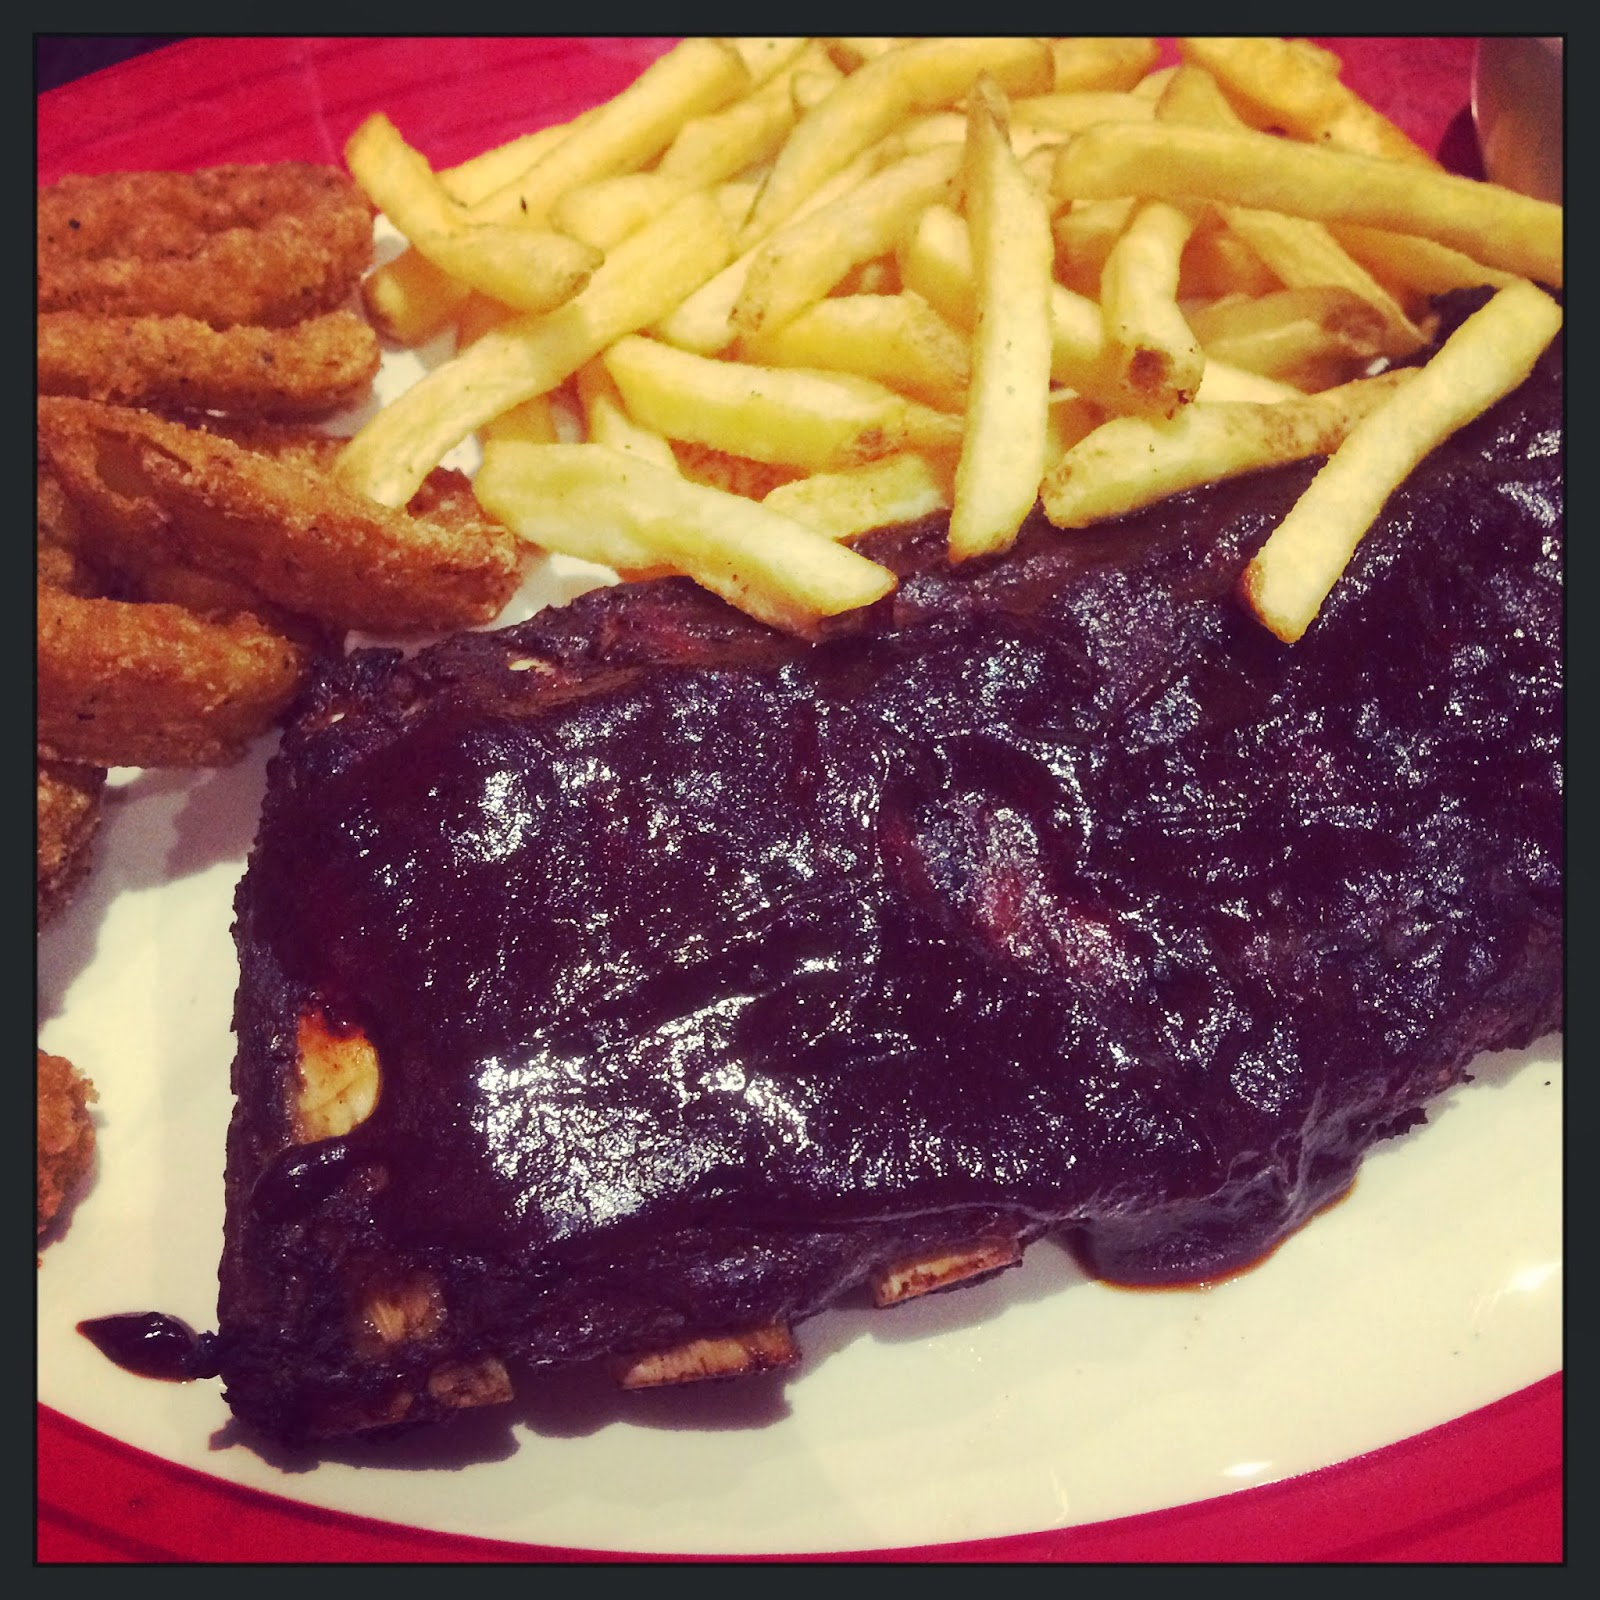 TGI Friday's BBQ ribs